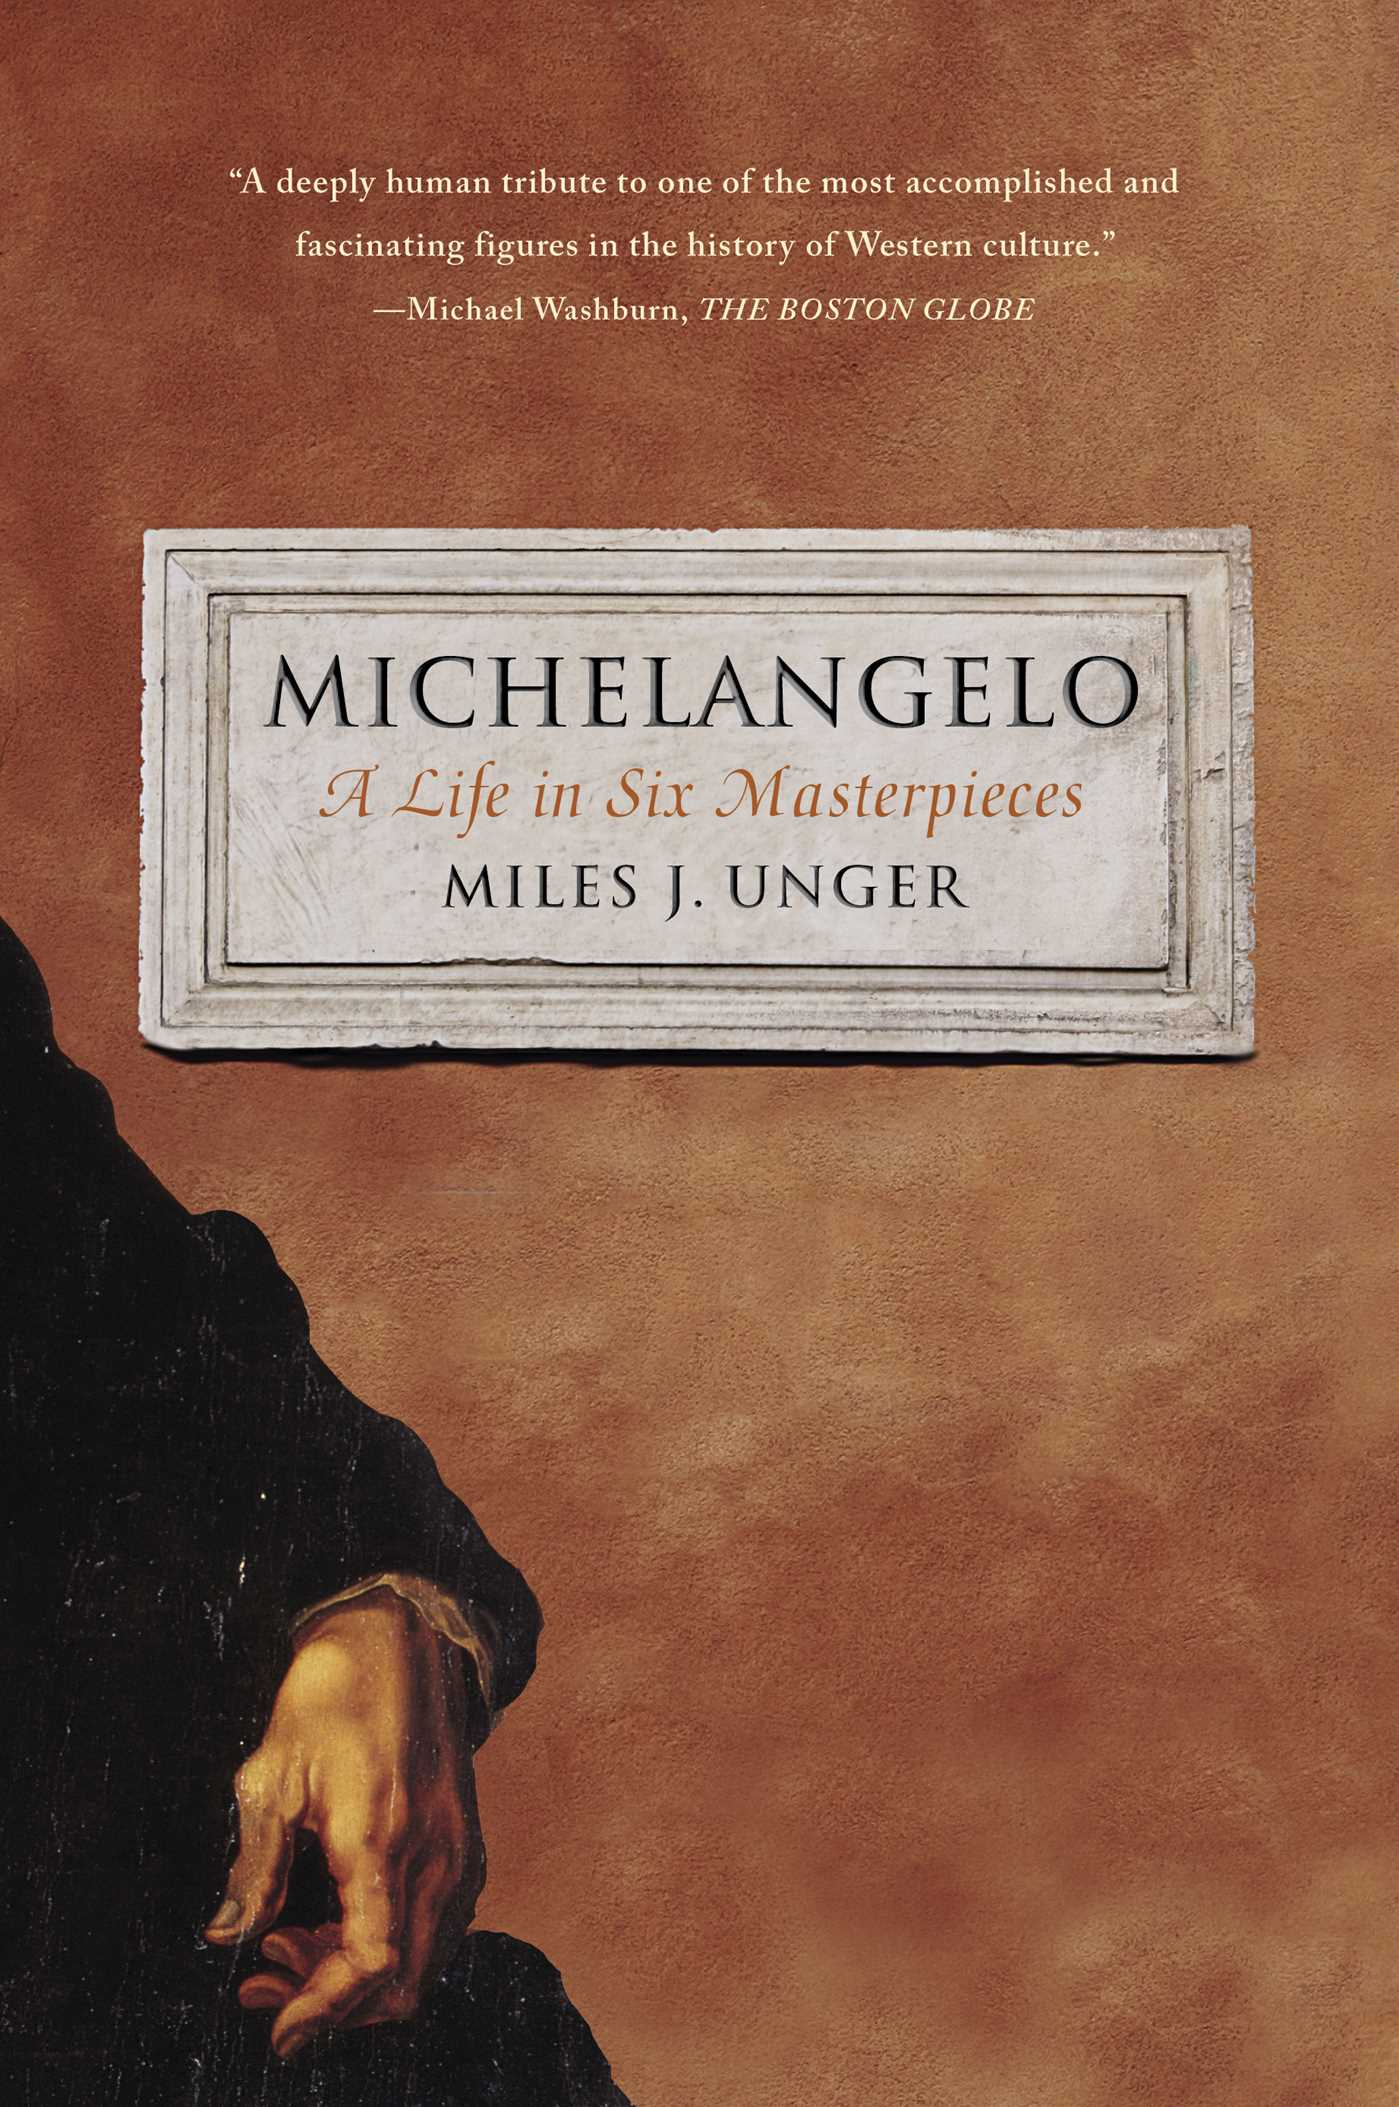 Michelangelo-9781451678789_hr